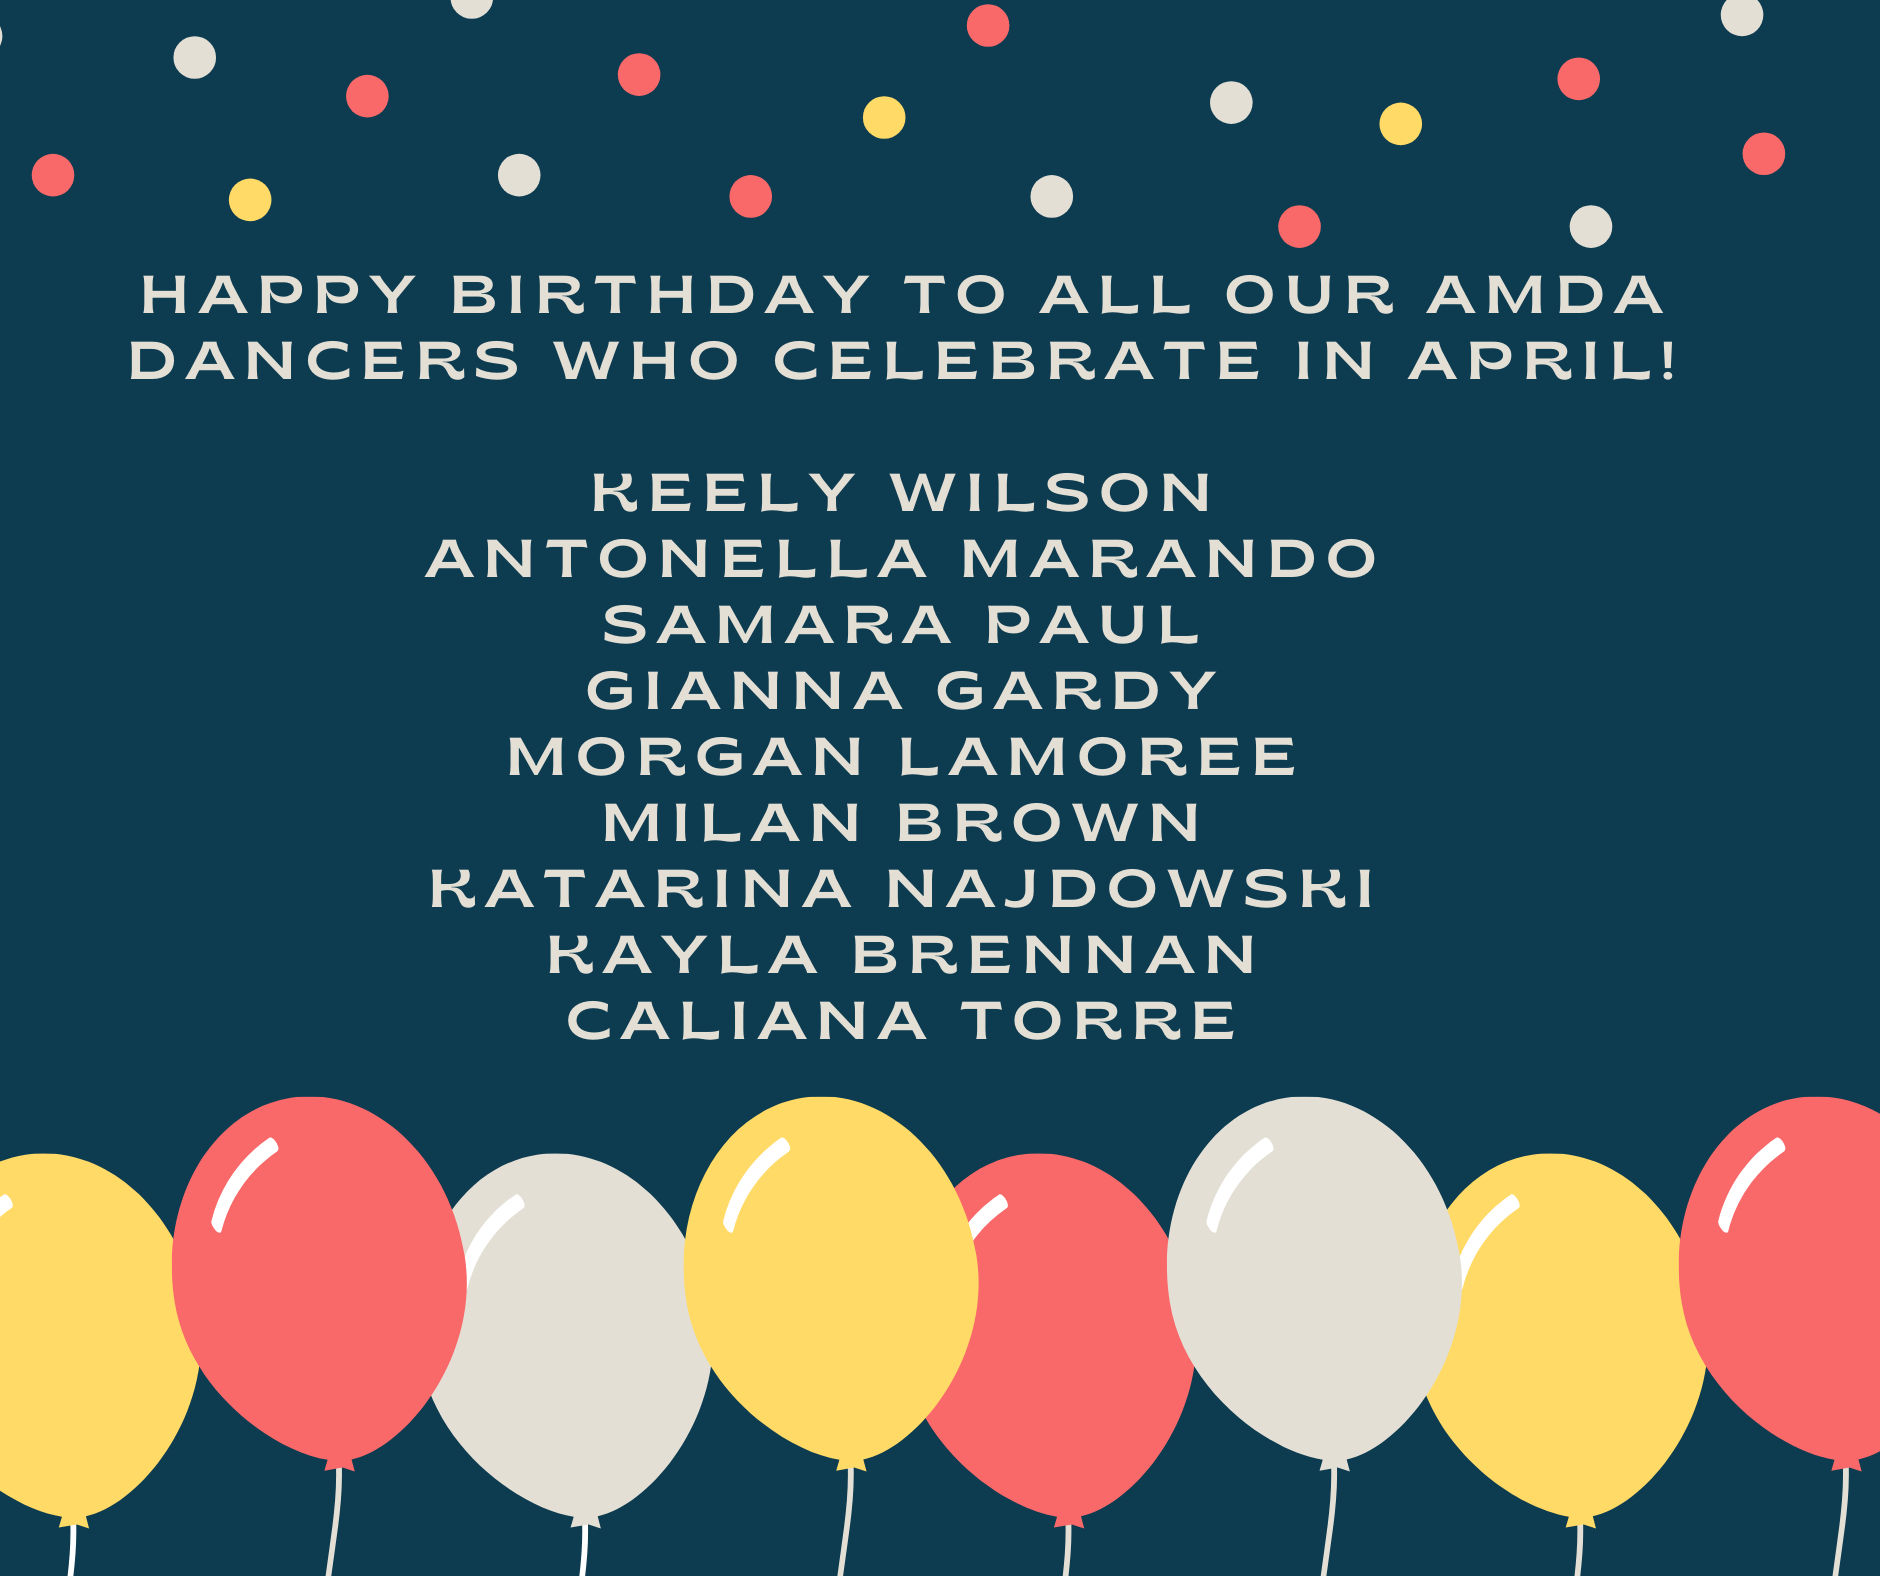 April Birthdays! - Keely Wilson, Antonella Marando, Samara Paul, Gianna Gardy, Morgan Lamoree, Milan Brown, Katarina Najdowski, Kayla Brennan, Caliana Torre